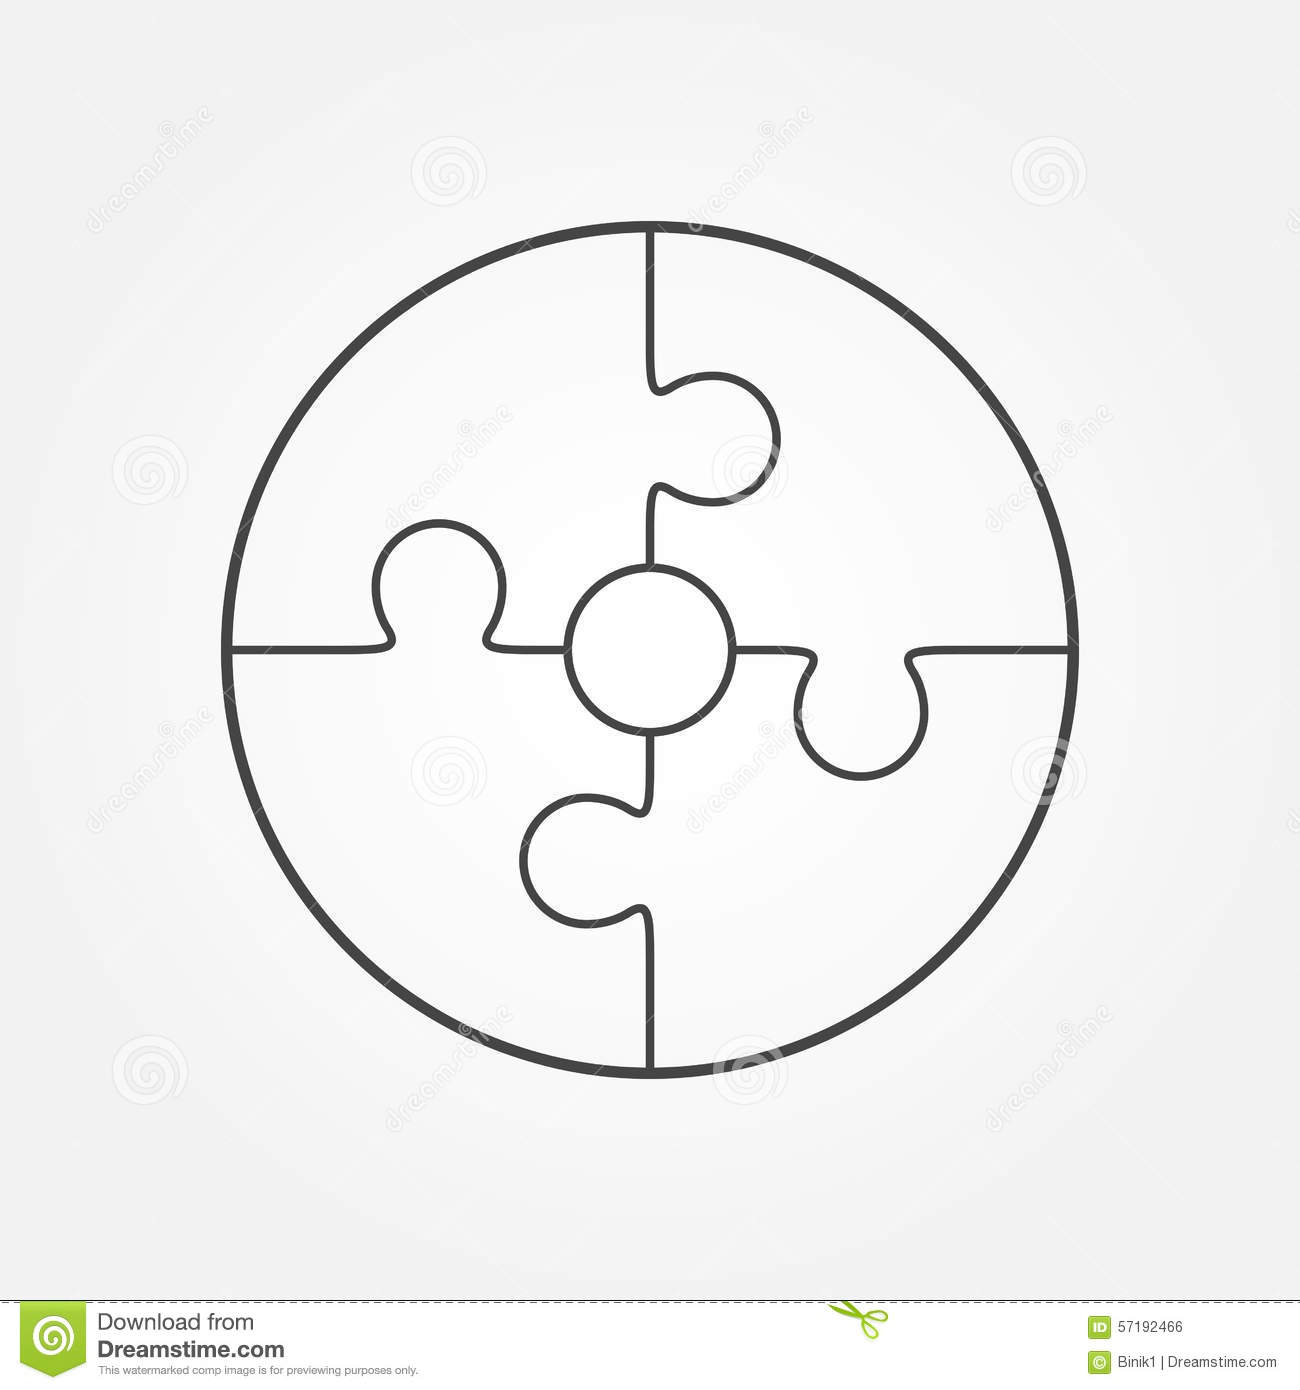 Jigsaw Puzzle In The Form Of Circle Stock Illustration